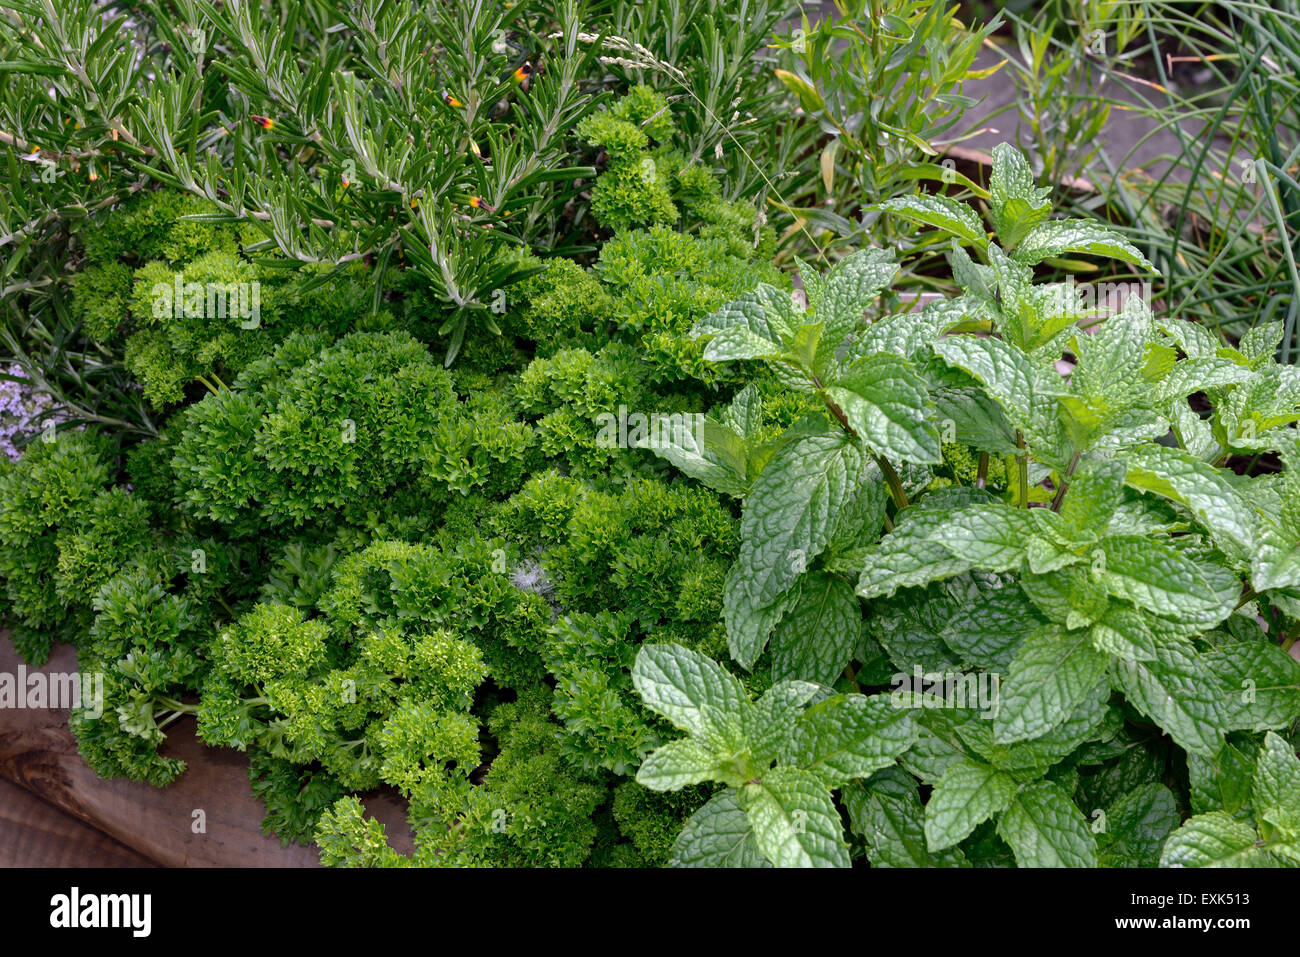 Raised bed for culinary herbs, mint, curly leaf parsley, and rosemary for use in the kitchen - Stock Image